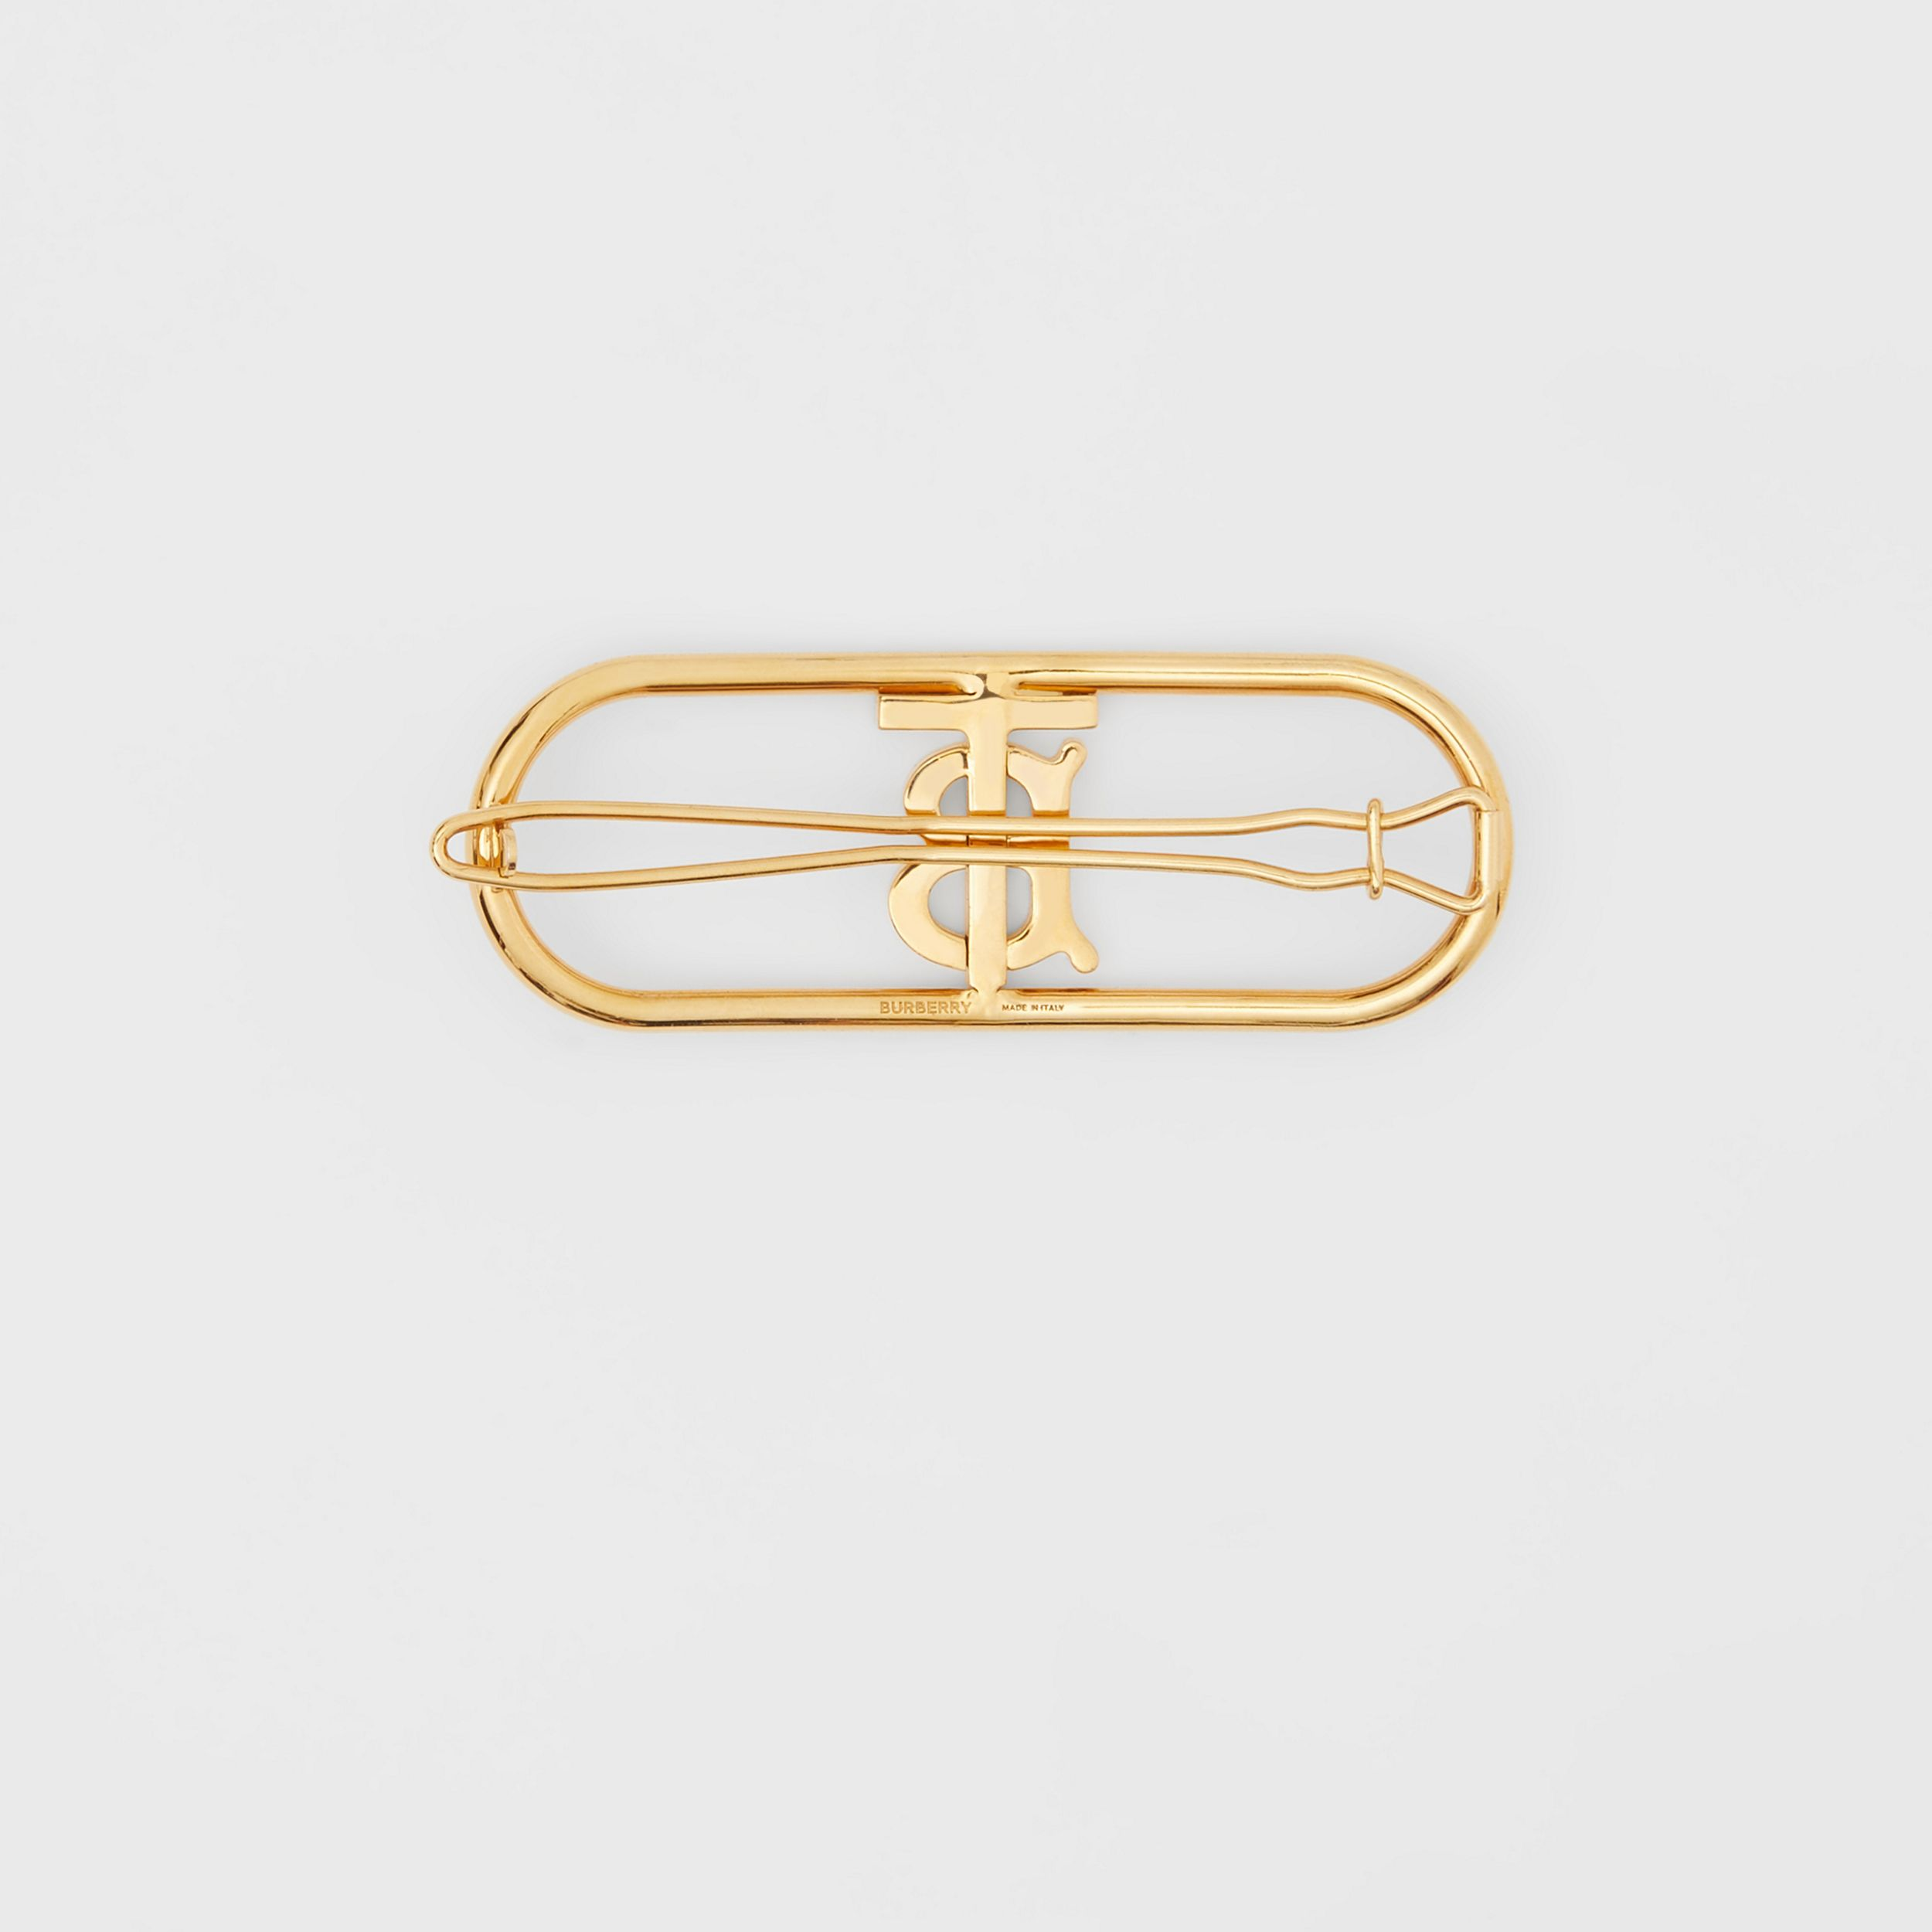 Gold-plated Monogram Motif Hair Clip in Light - Women | Burberry - 4